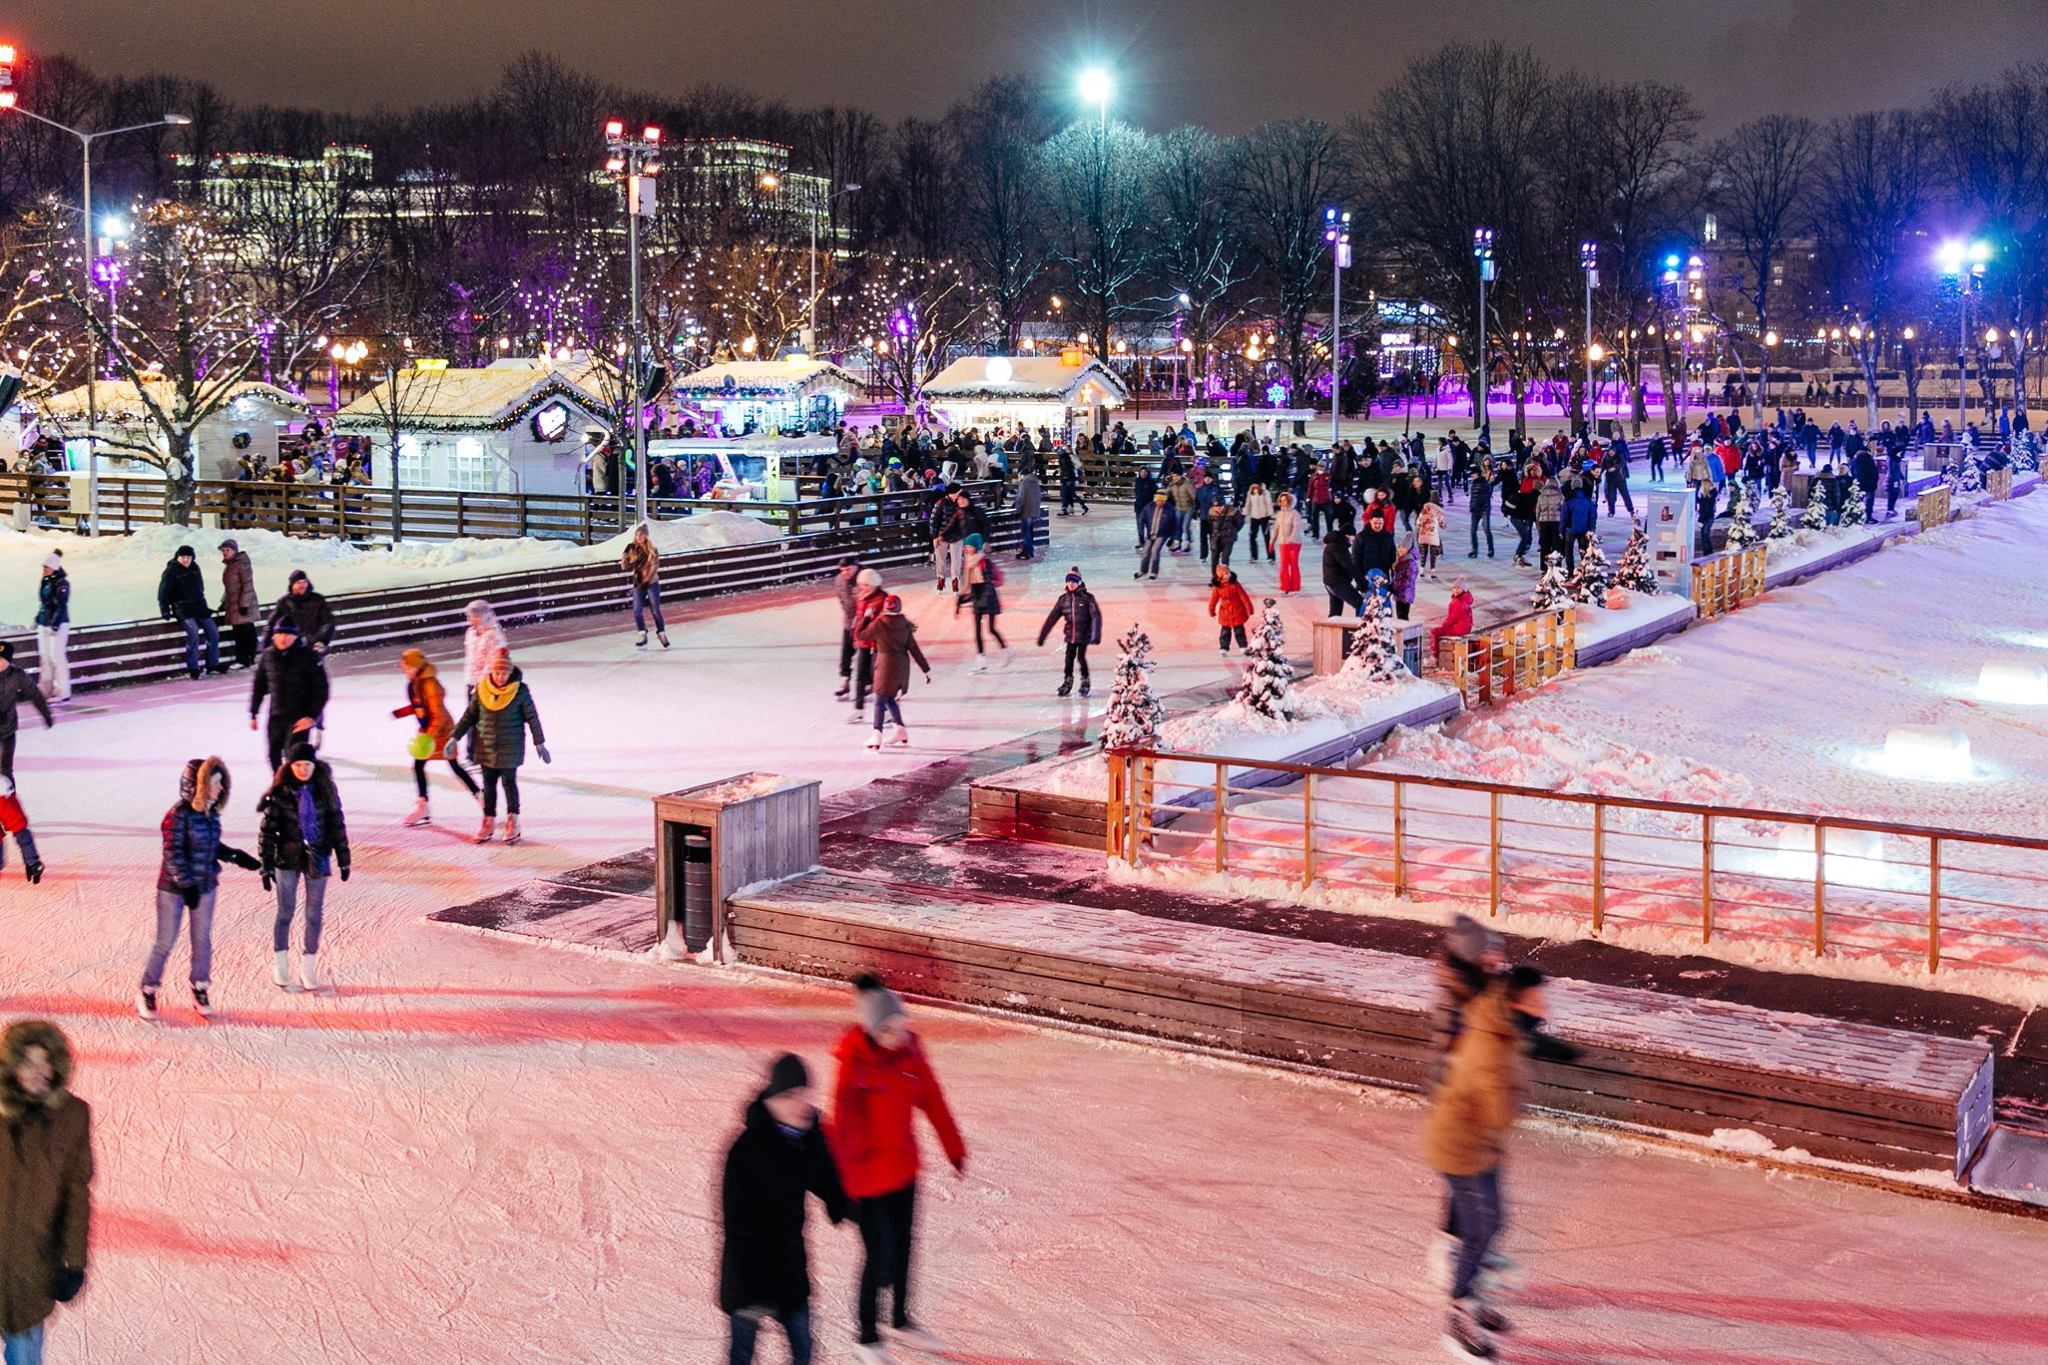 skating rinks in moscow will work until the end of march